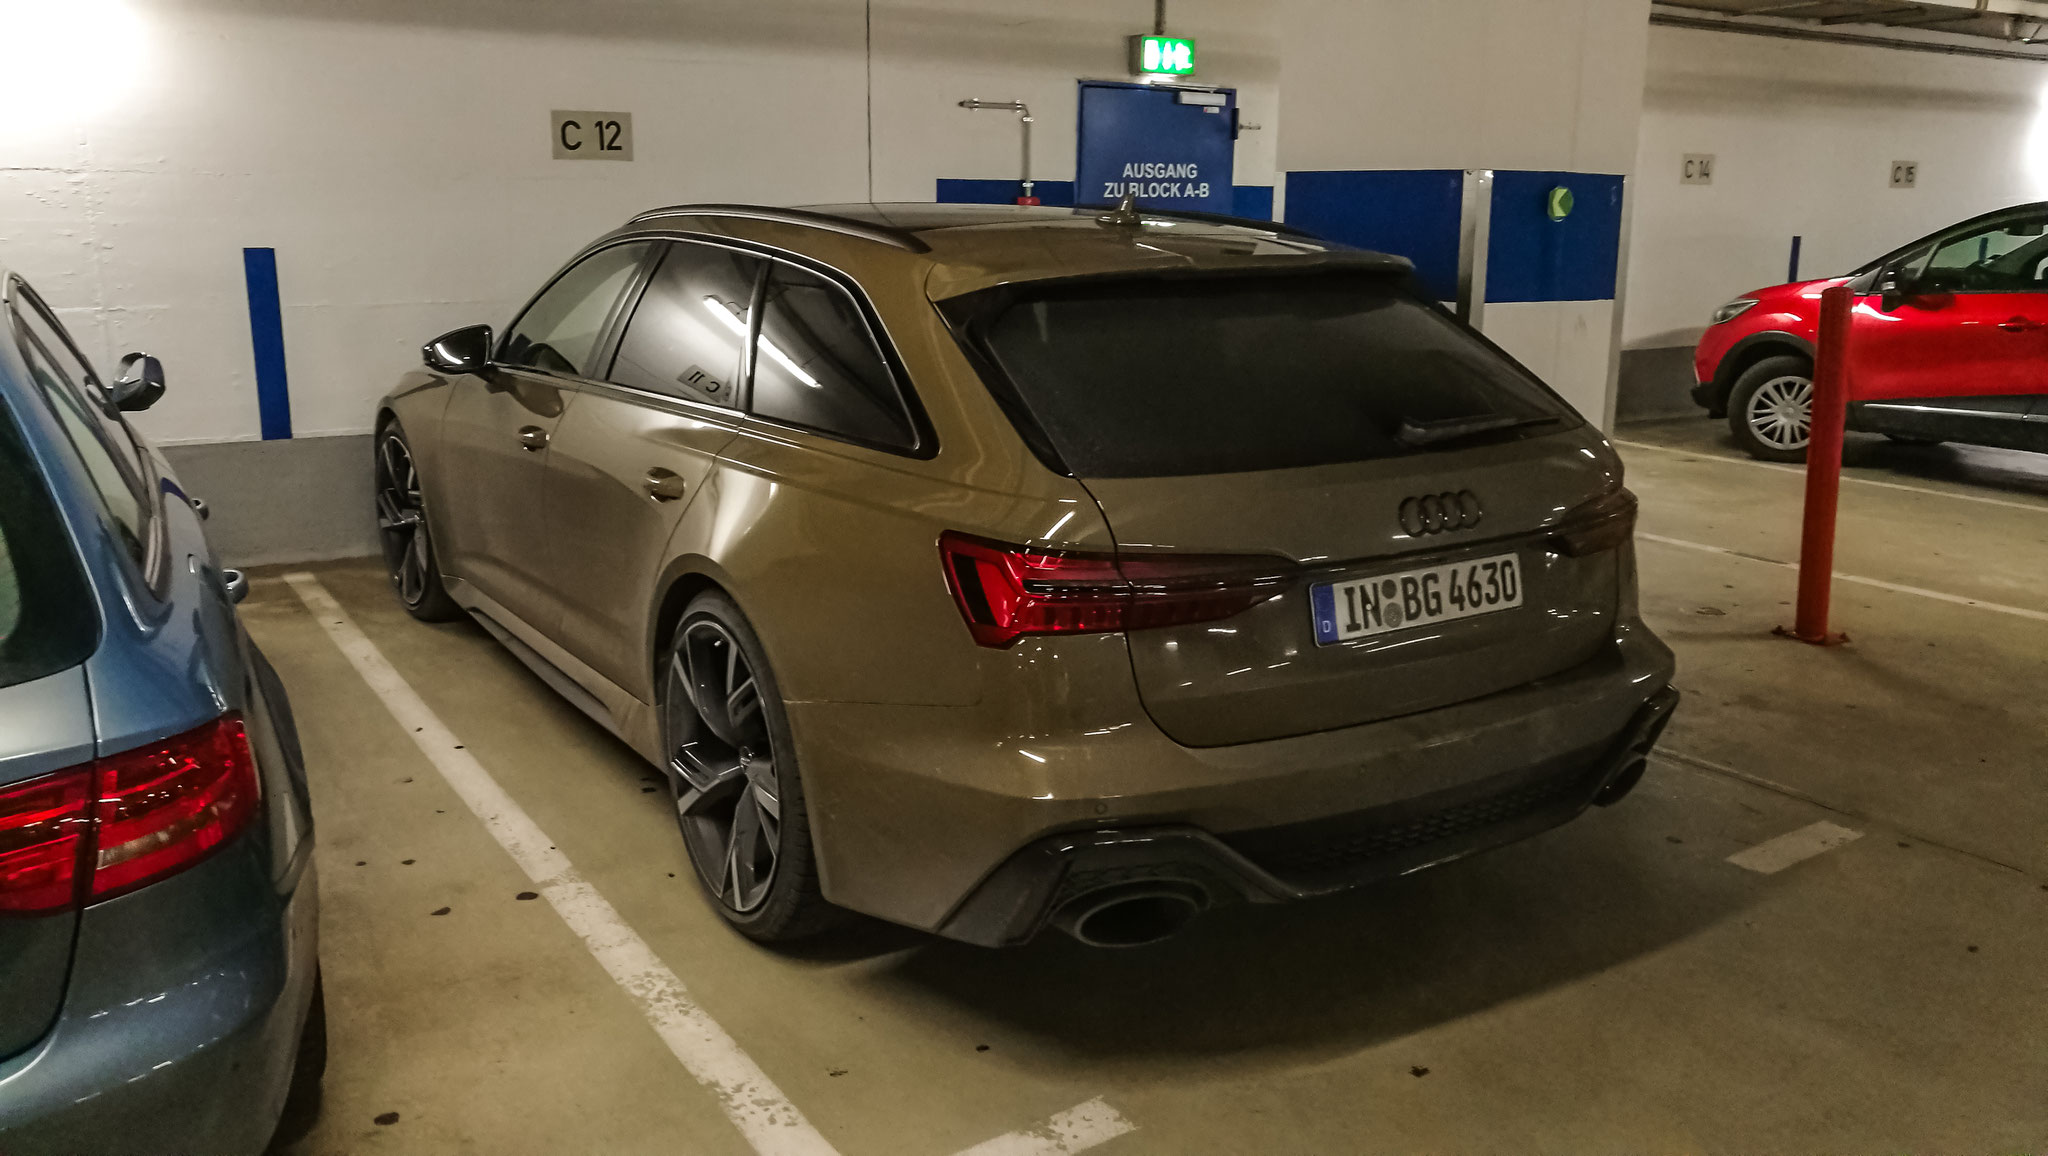 Audi RS6 - IN-BG-4630